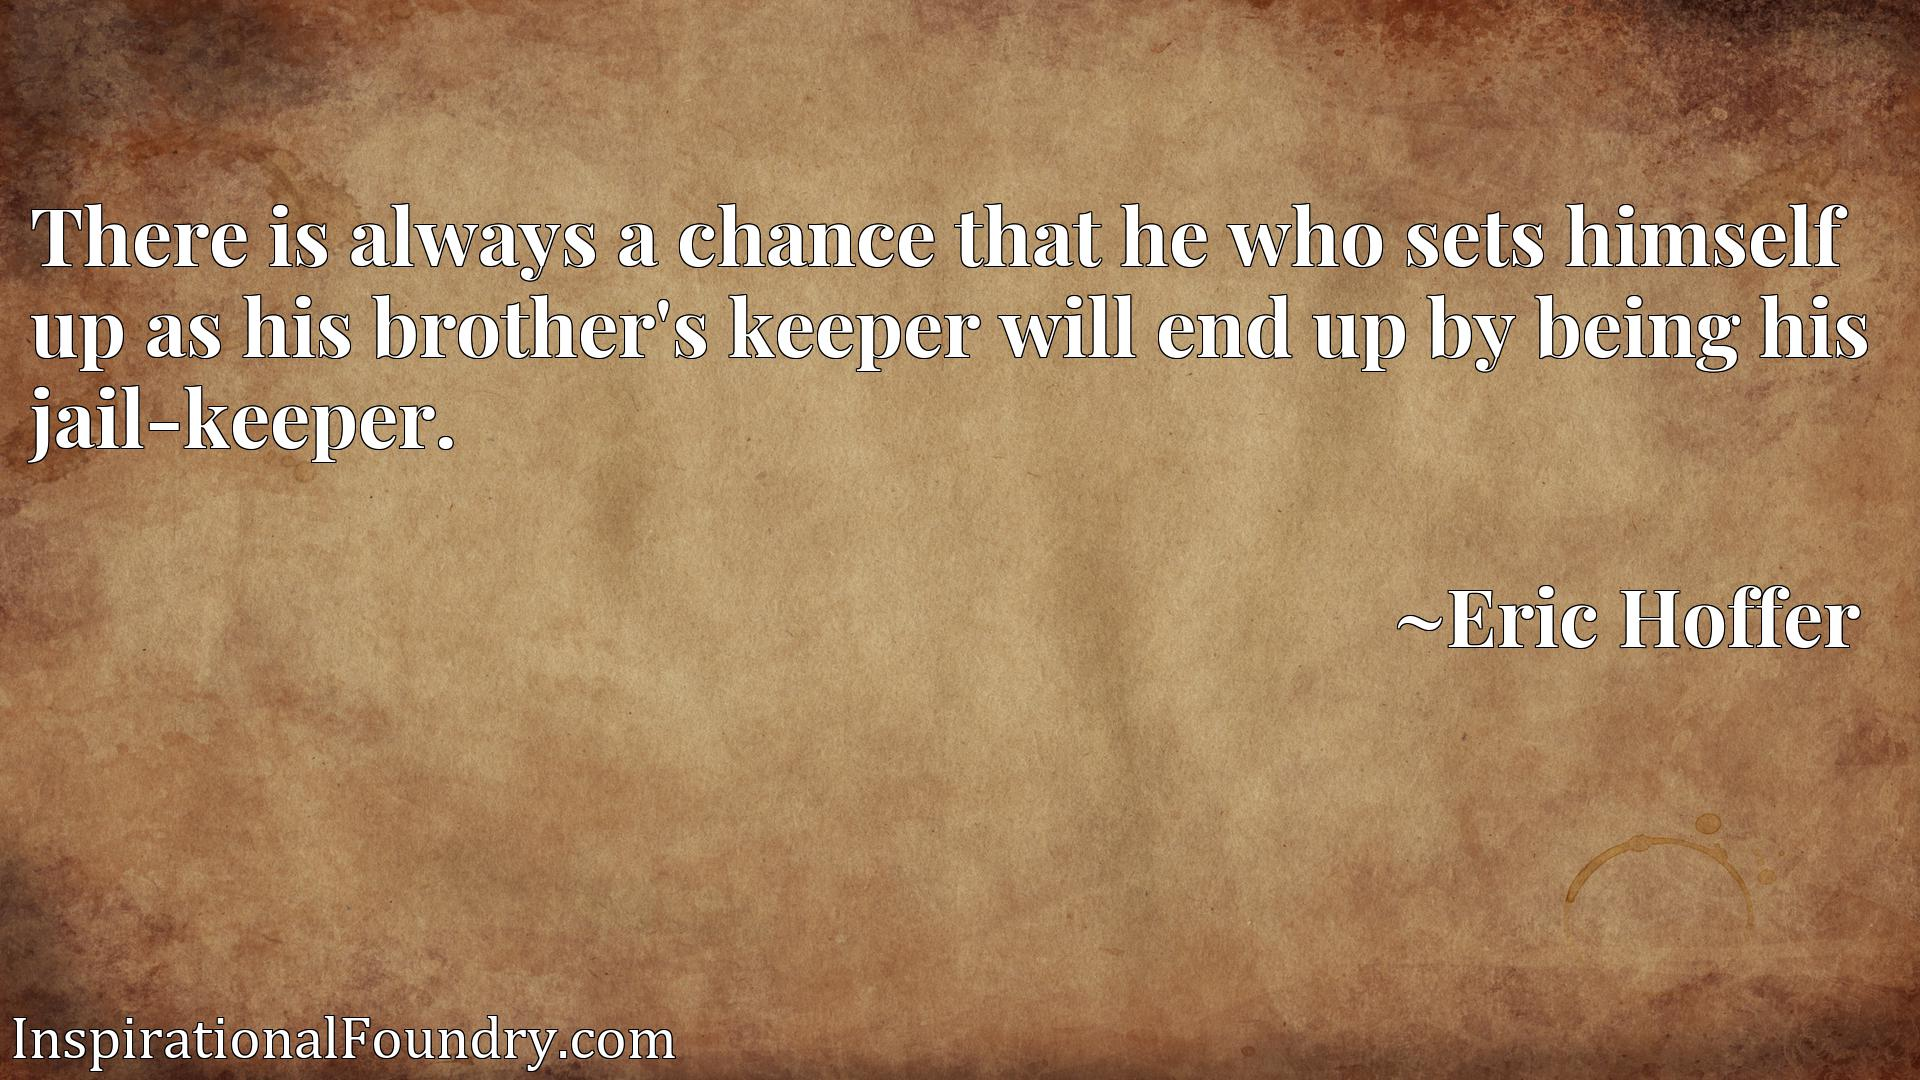 There is always a chance that he who sets himself up as his brother's keeper will end up by being his jail-keeper.